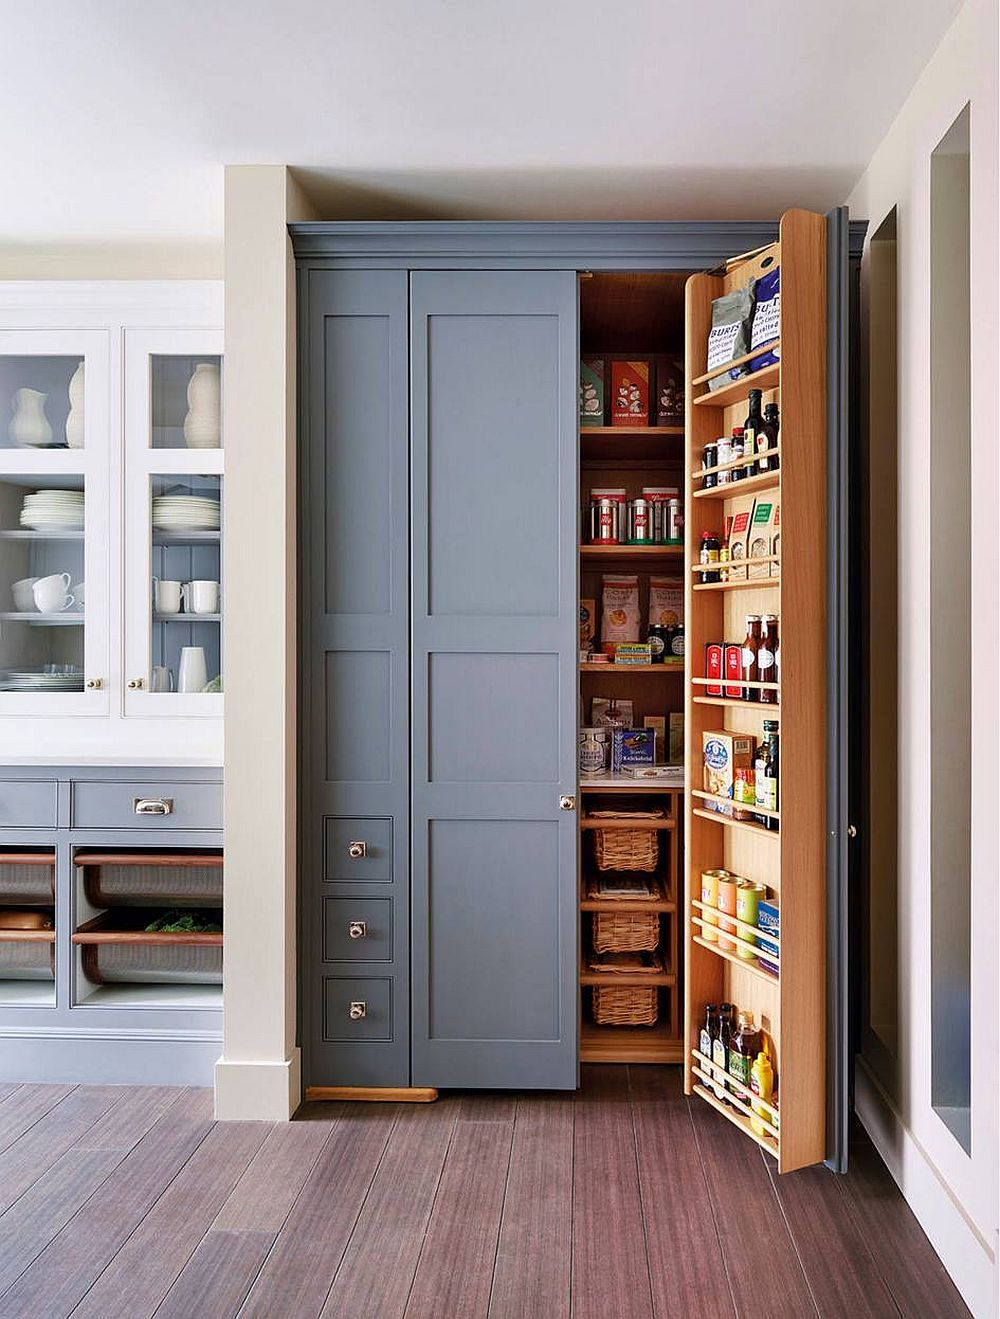 Making use of the kitchen corner with a fabulous pantry with bluish-gray doors